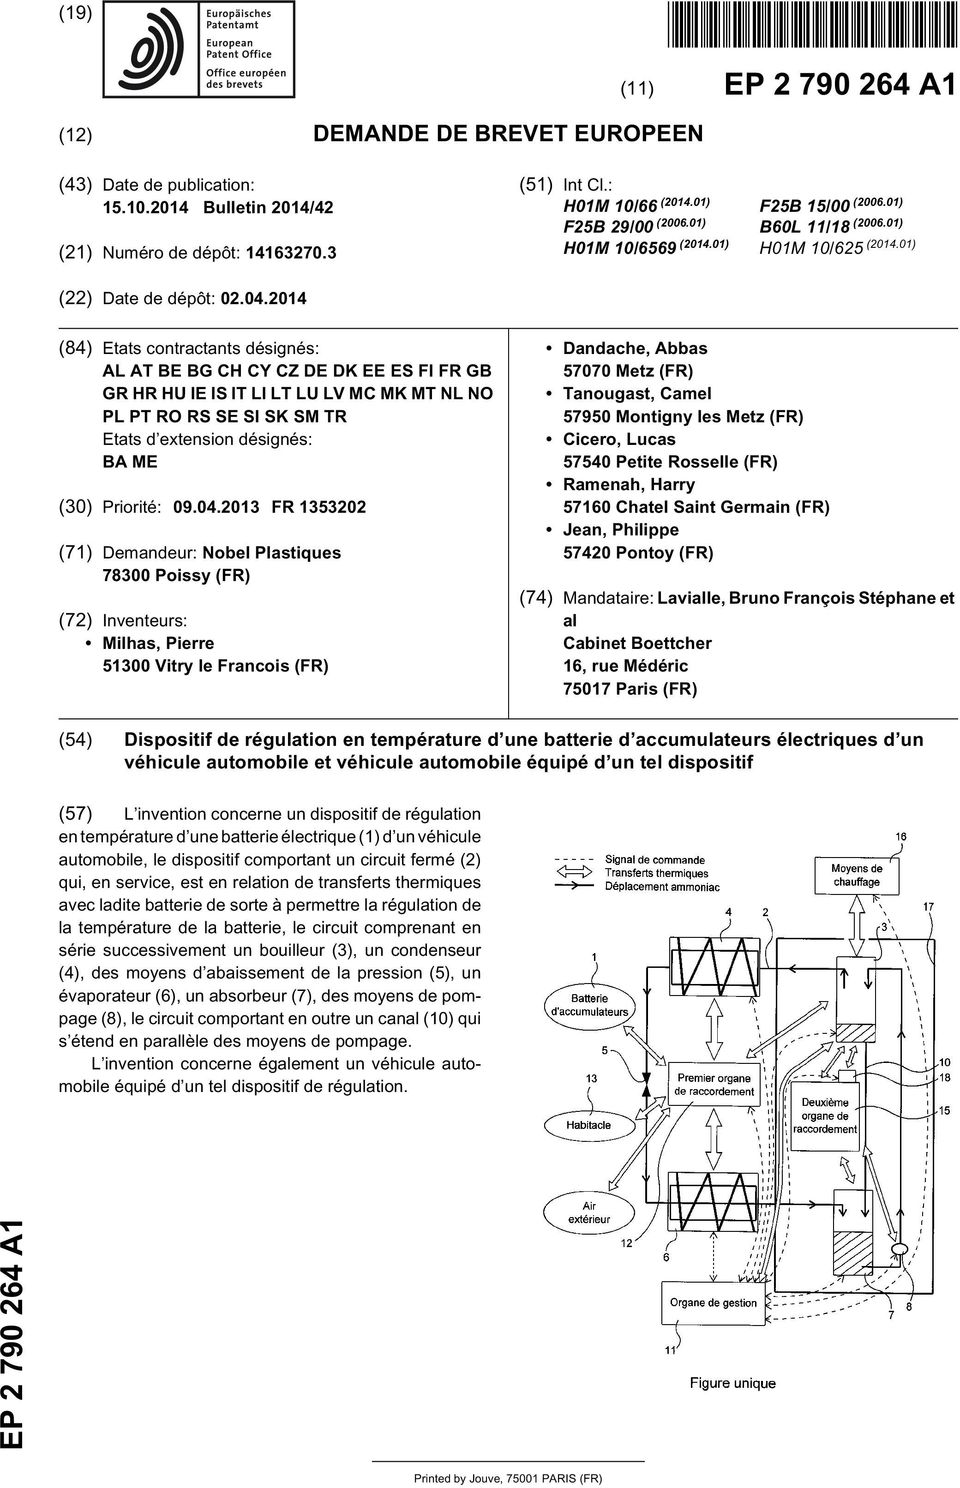 14 (84) Etats contractants désignés: AL AT BE BG CH CY CZ DE DK EE ES FI FR GB GR HR HU IE IS IT LI LT LU LV MC MK MT NL NO PL PT RO RS SE SI SK SM TR Etats d extension désignés: BA ME () Priorité: